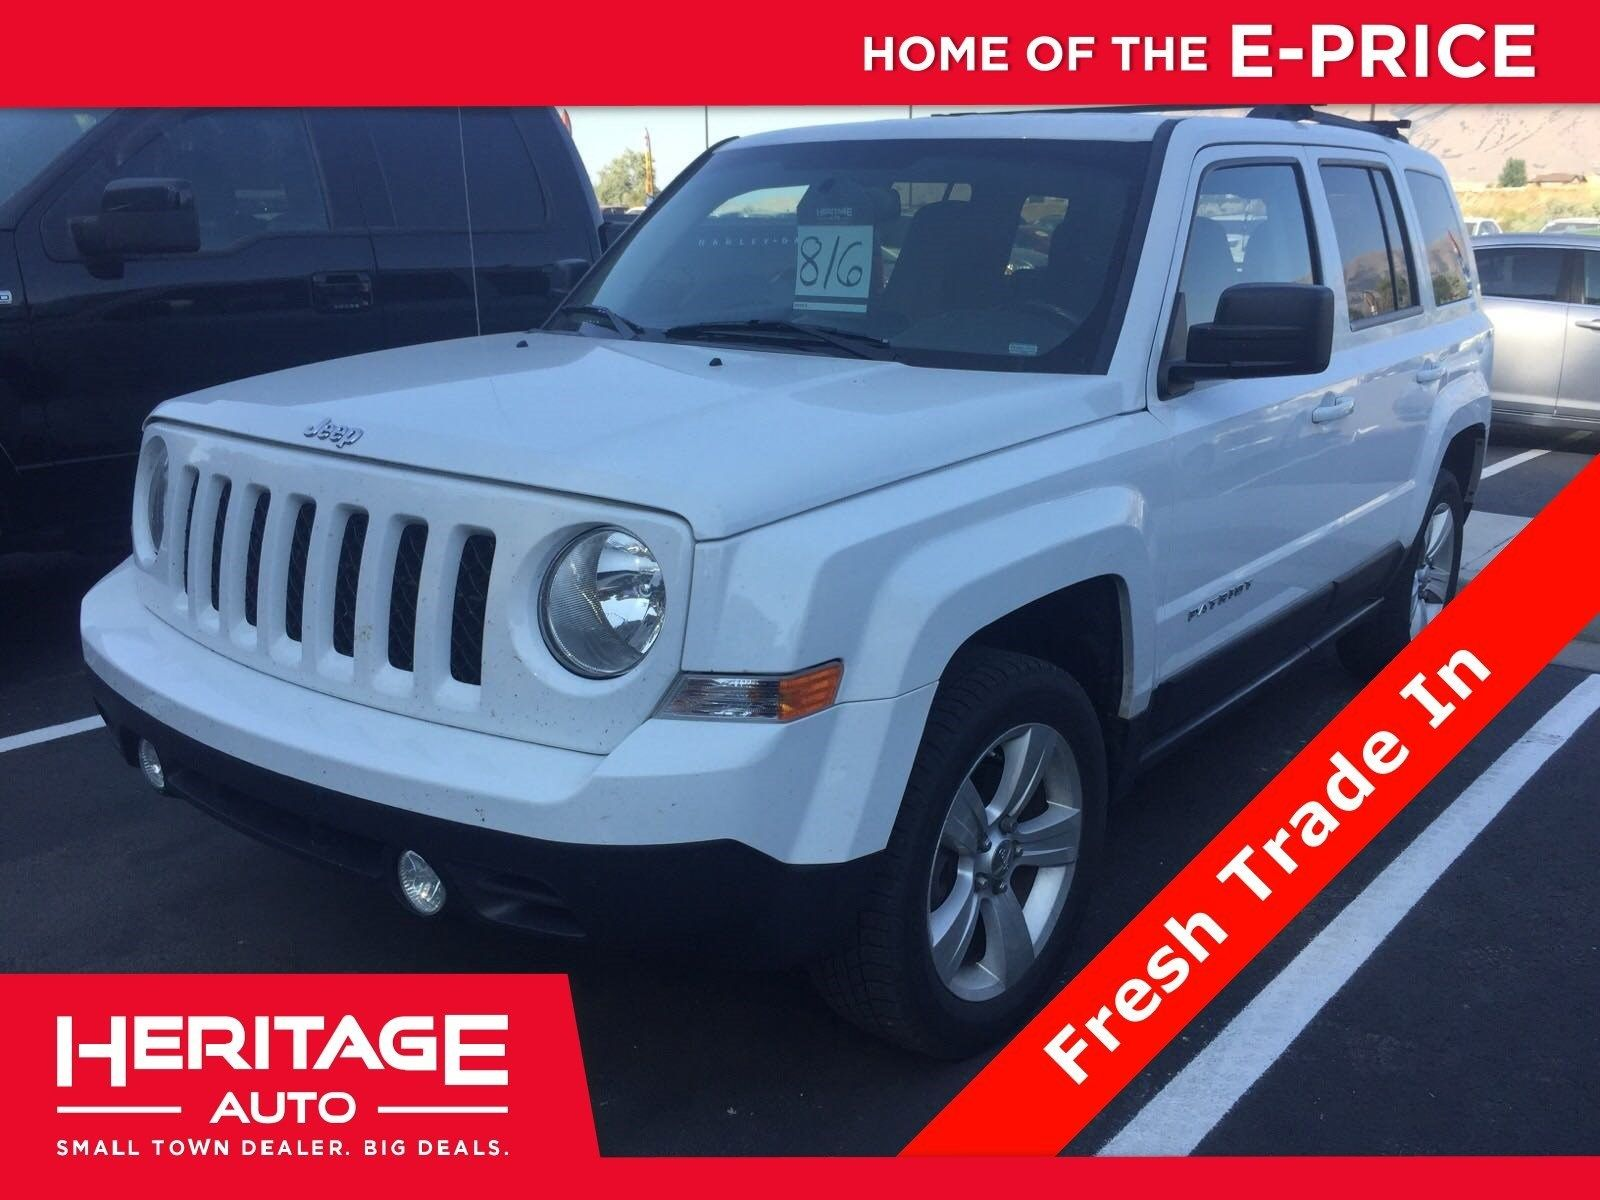 12,990 57125 miles 2013 Jeep Patriot, from Heritage